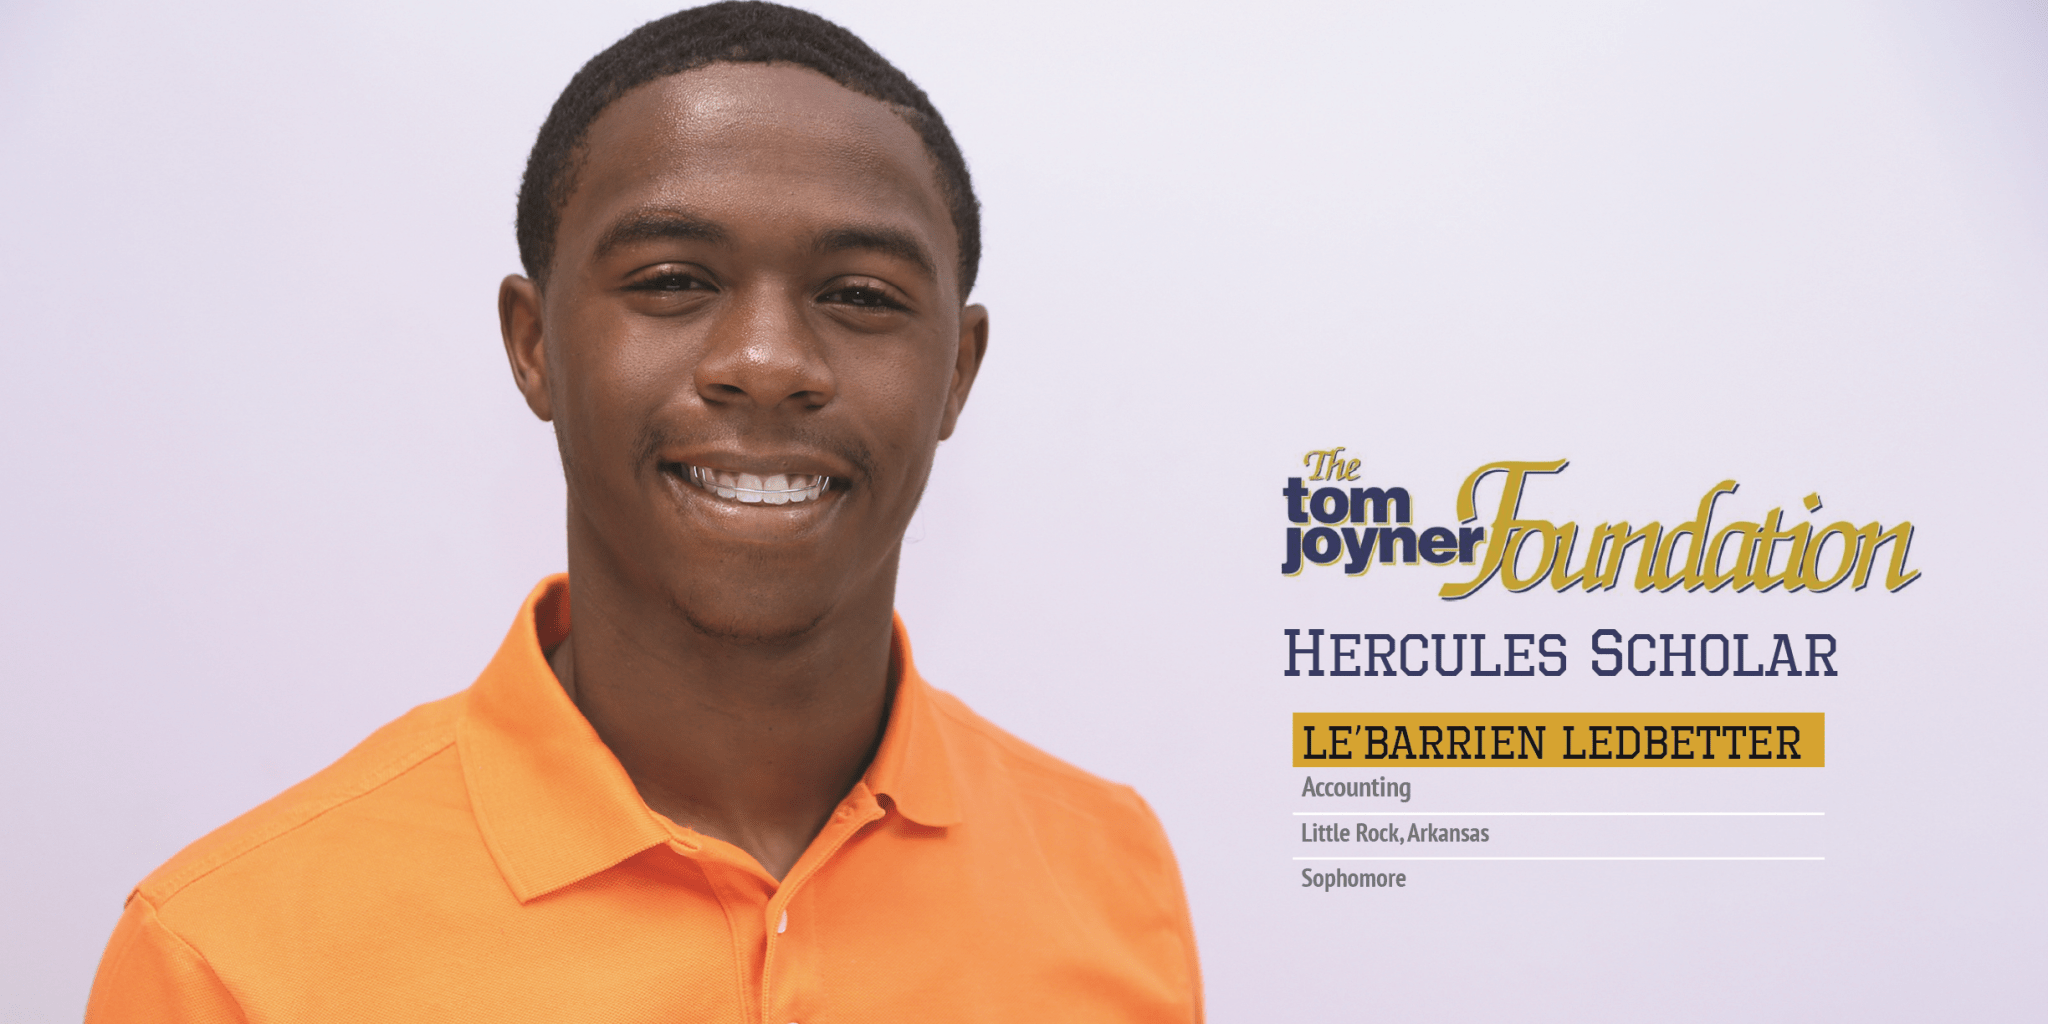 Future Certified Public Accountant, Le'Darrien Ledbetter of UAPB, is Today's Hercules Scholar